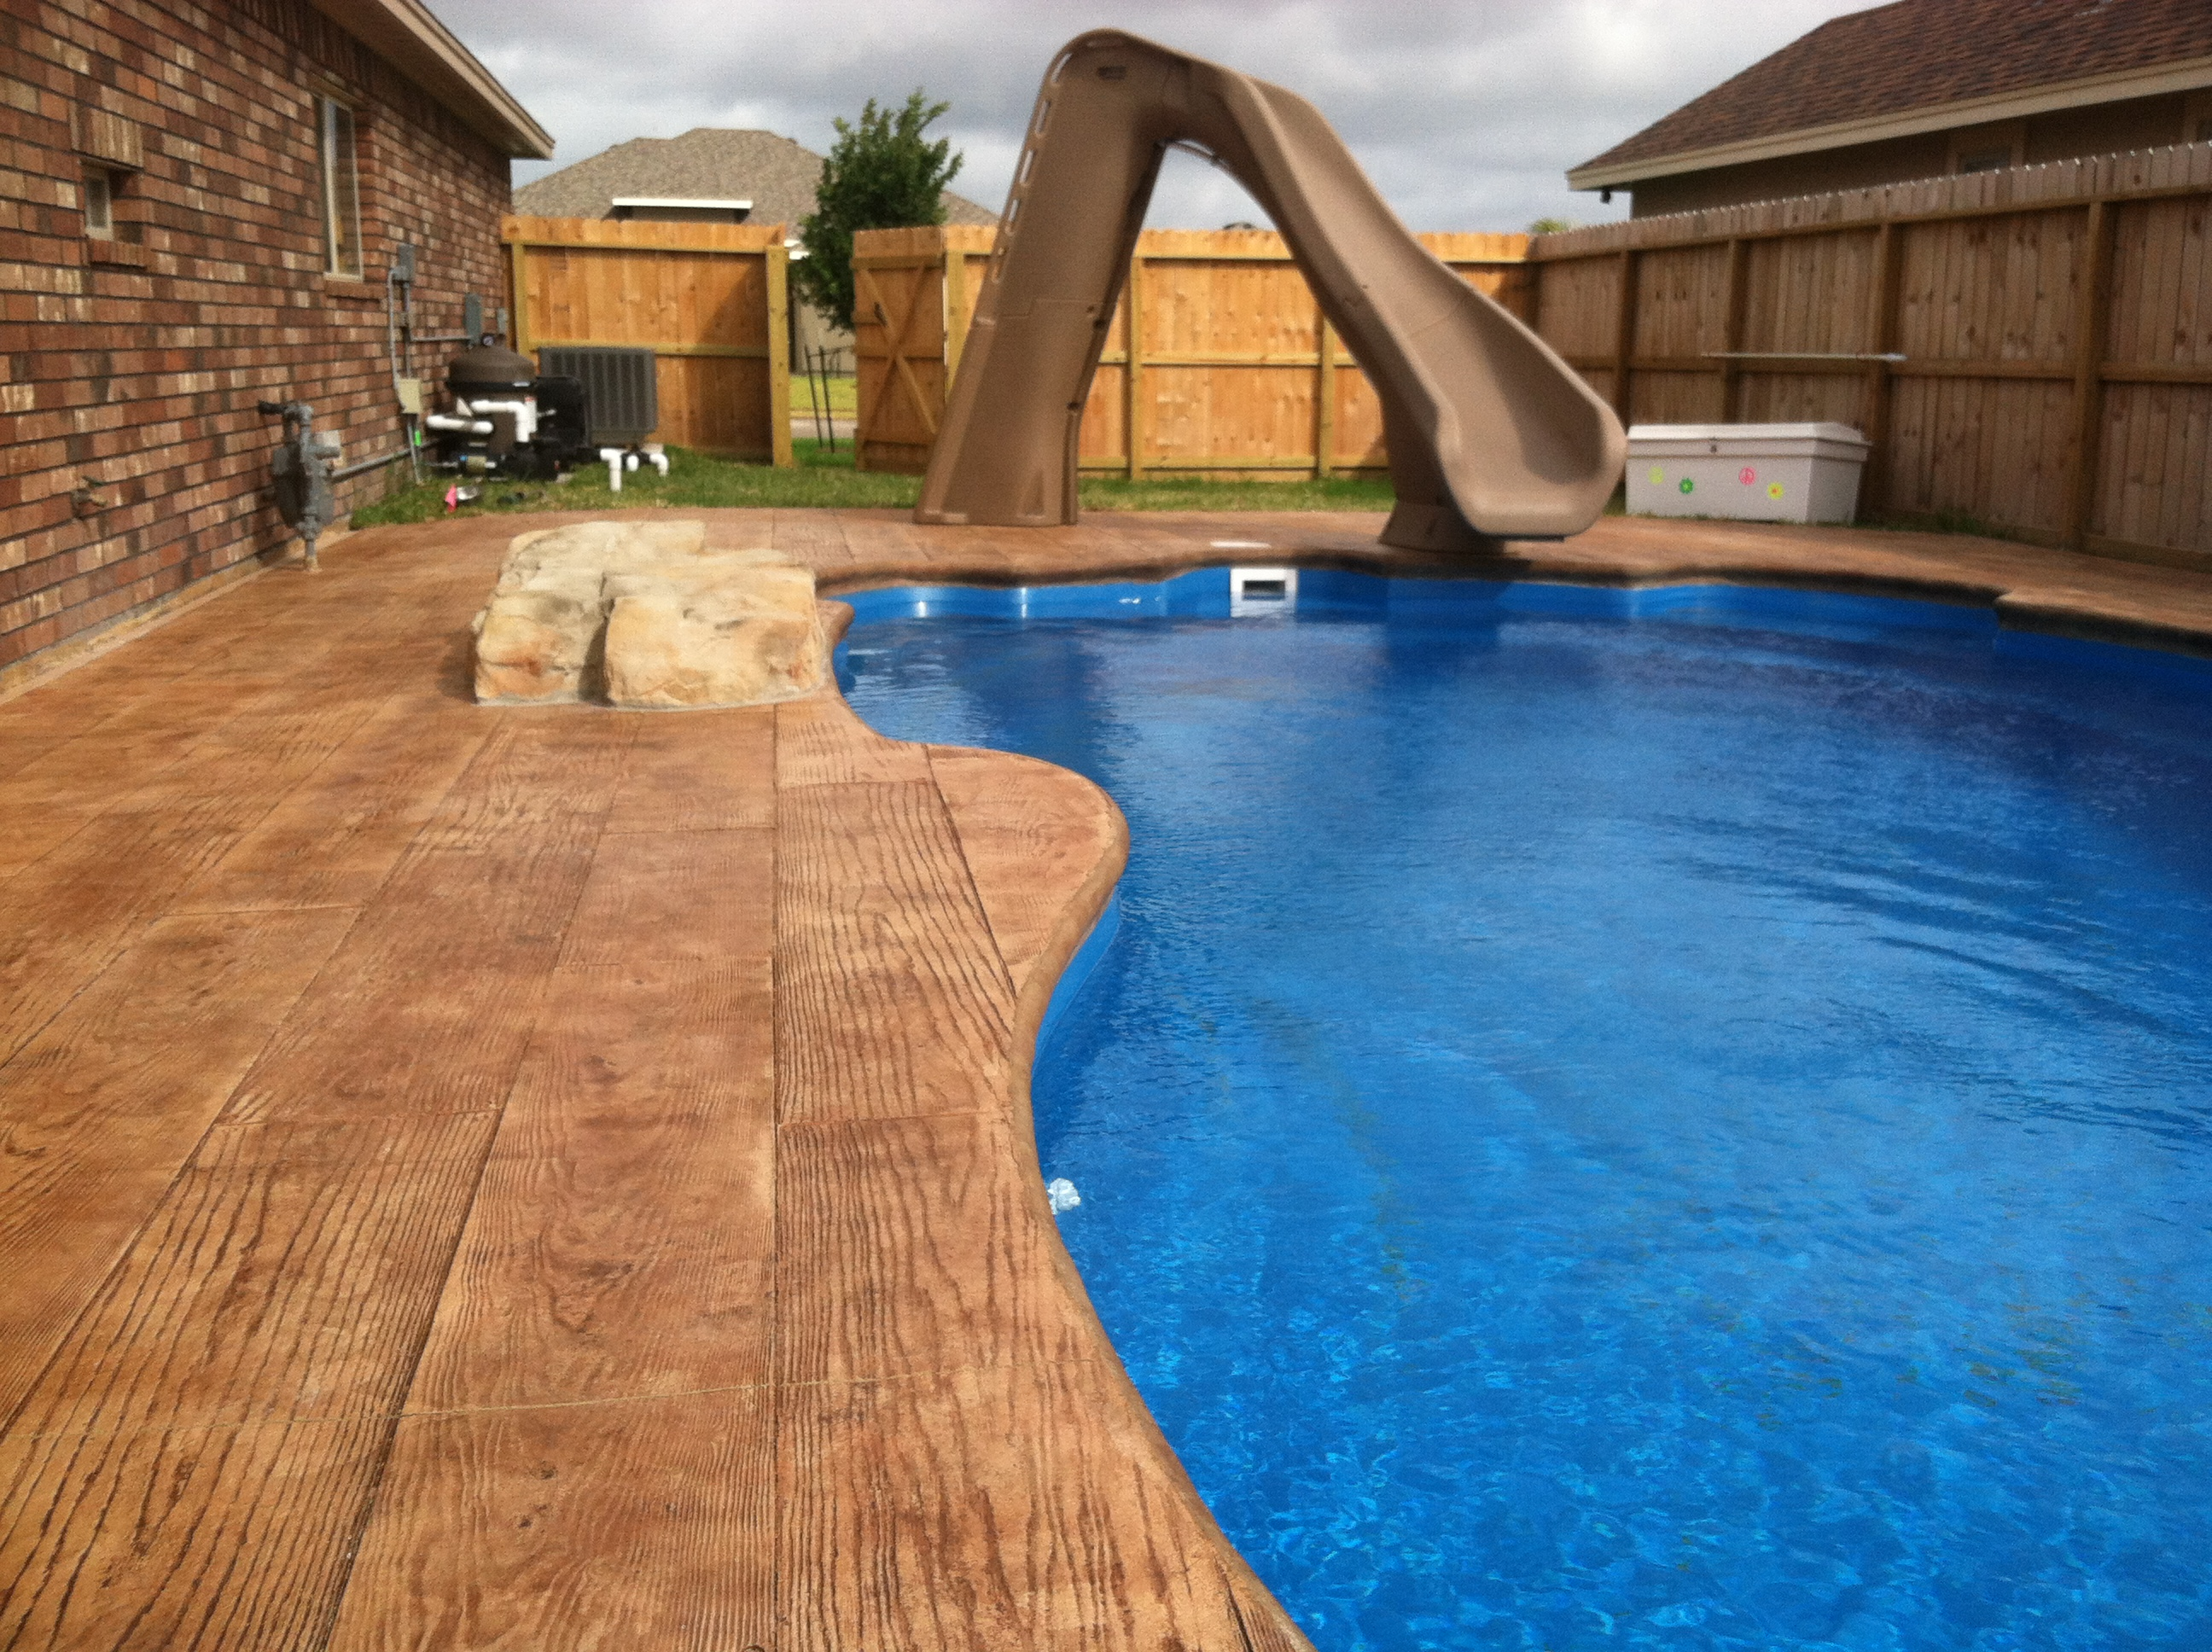 Pool with decorative concrete and a slide.